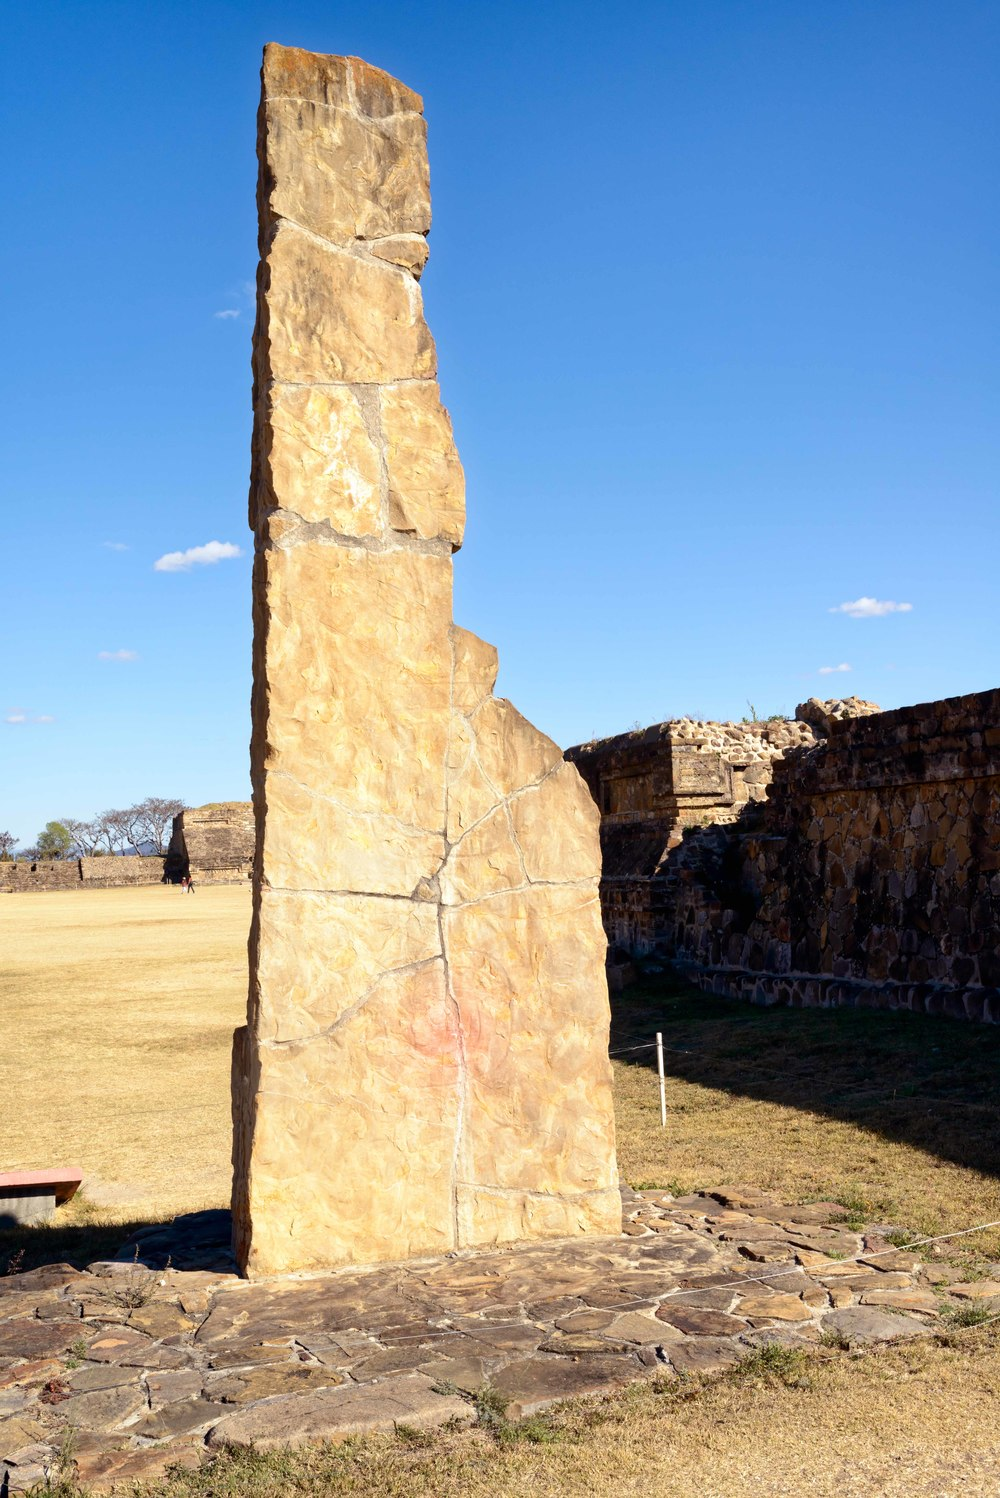 Stele 18 is the oldest and tallest (5.8 meters) found. It is believed that it was an astronomical instrument. On the eastern side are two glyphs, one a water sign. Incisions on the western side may relate to a calendar, Monte Alban,  Oaxaca, Mexico.